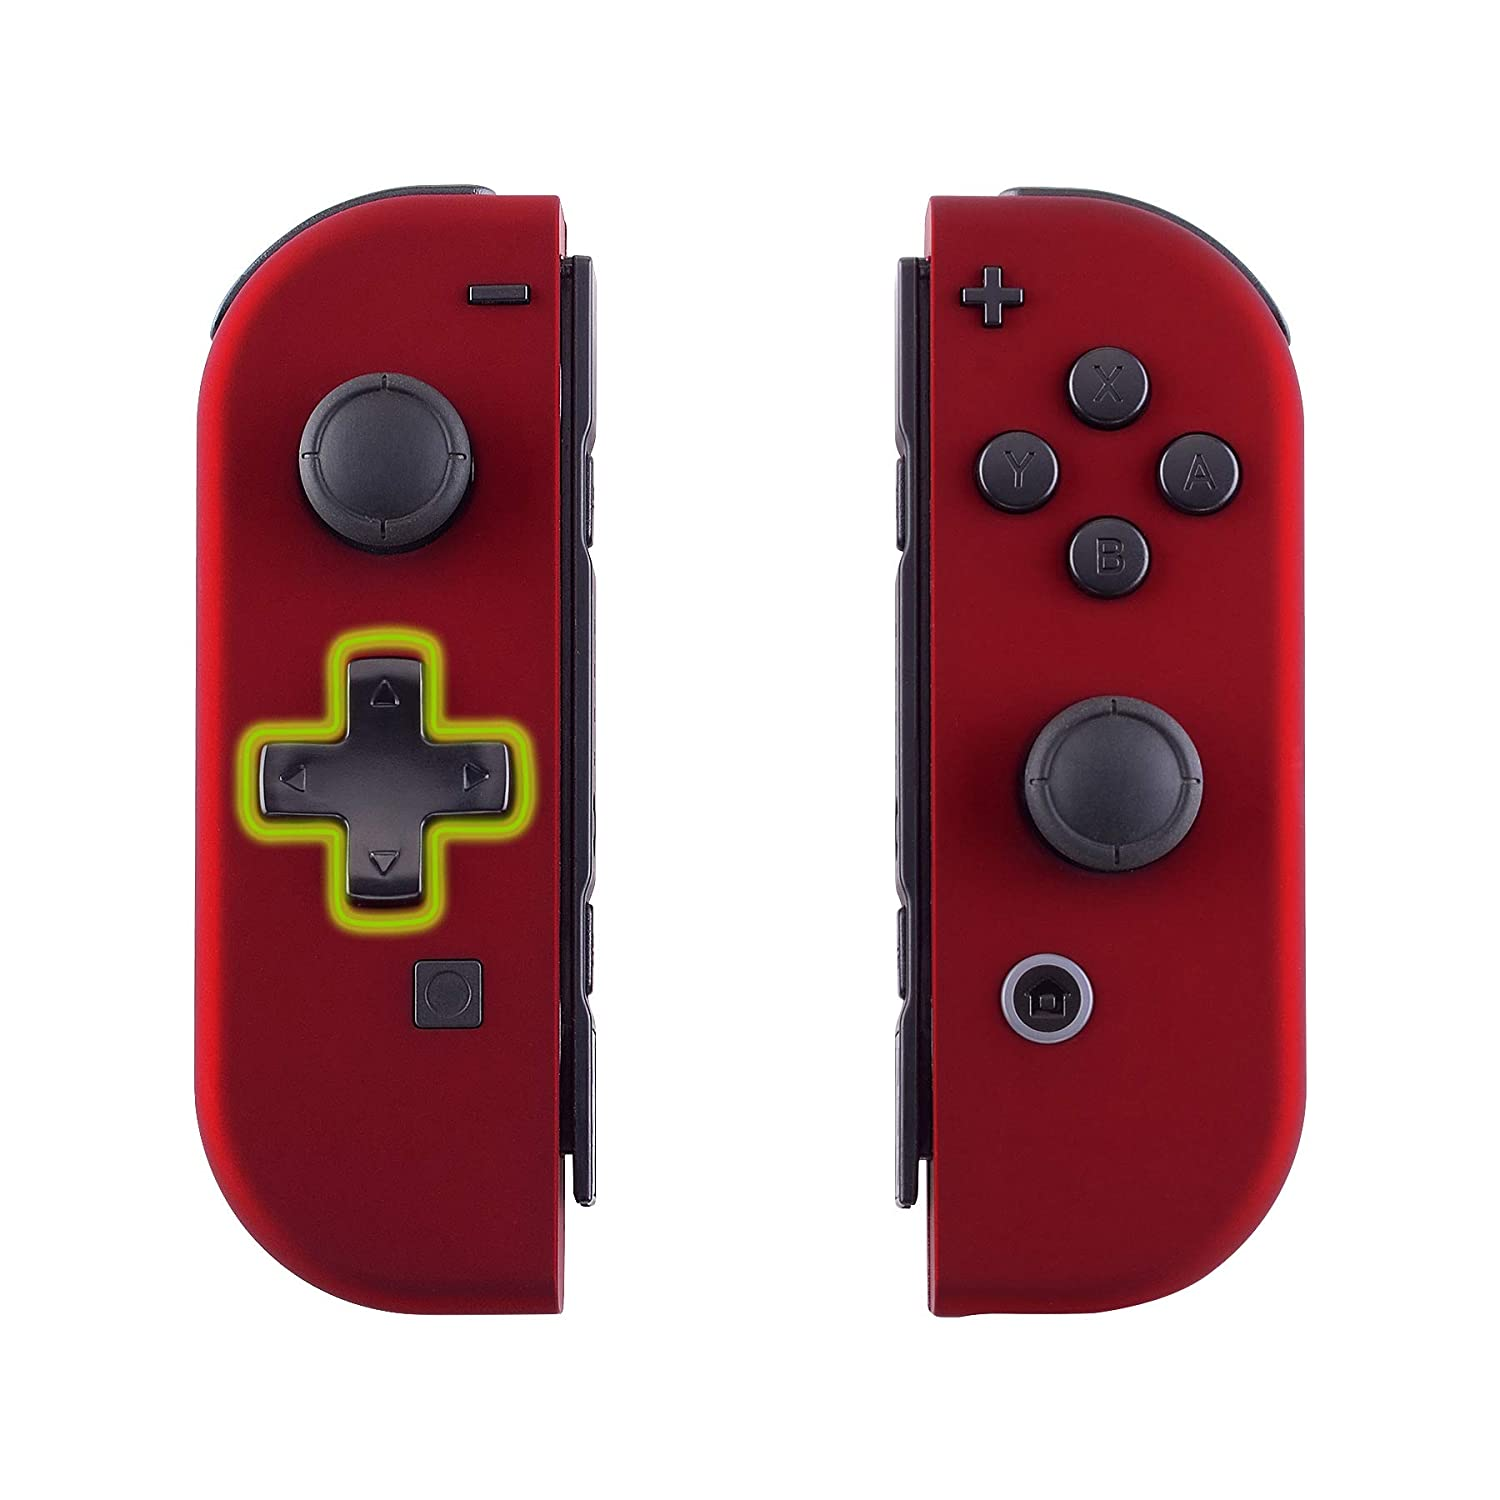 eXtremeRate Soft Touch Red Joycon Handheld Controller Housing (D-Pad Version) with Full Set Buttons, DIY Replacement Shell Case for Nintendo Switch ...